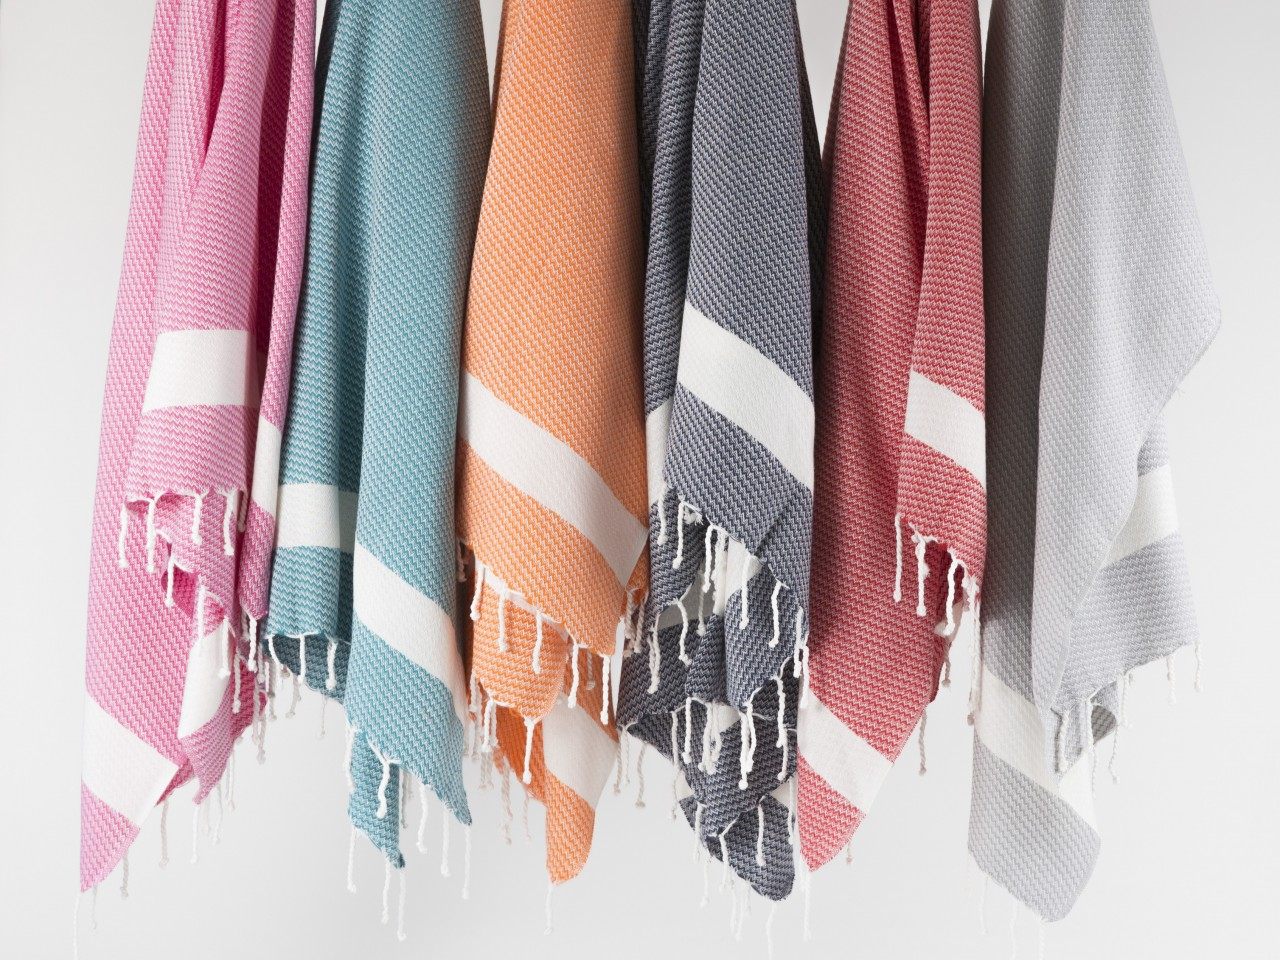 Turkish kitchen towels Photo - 9